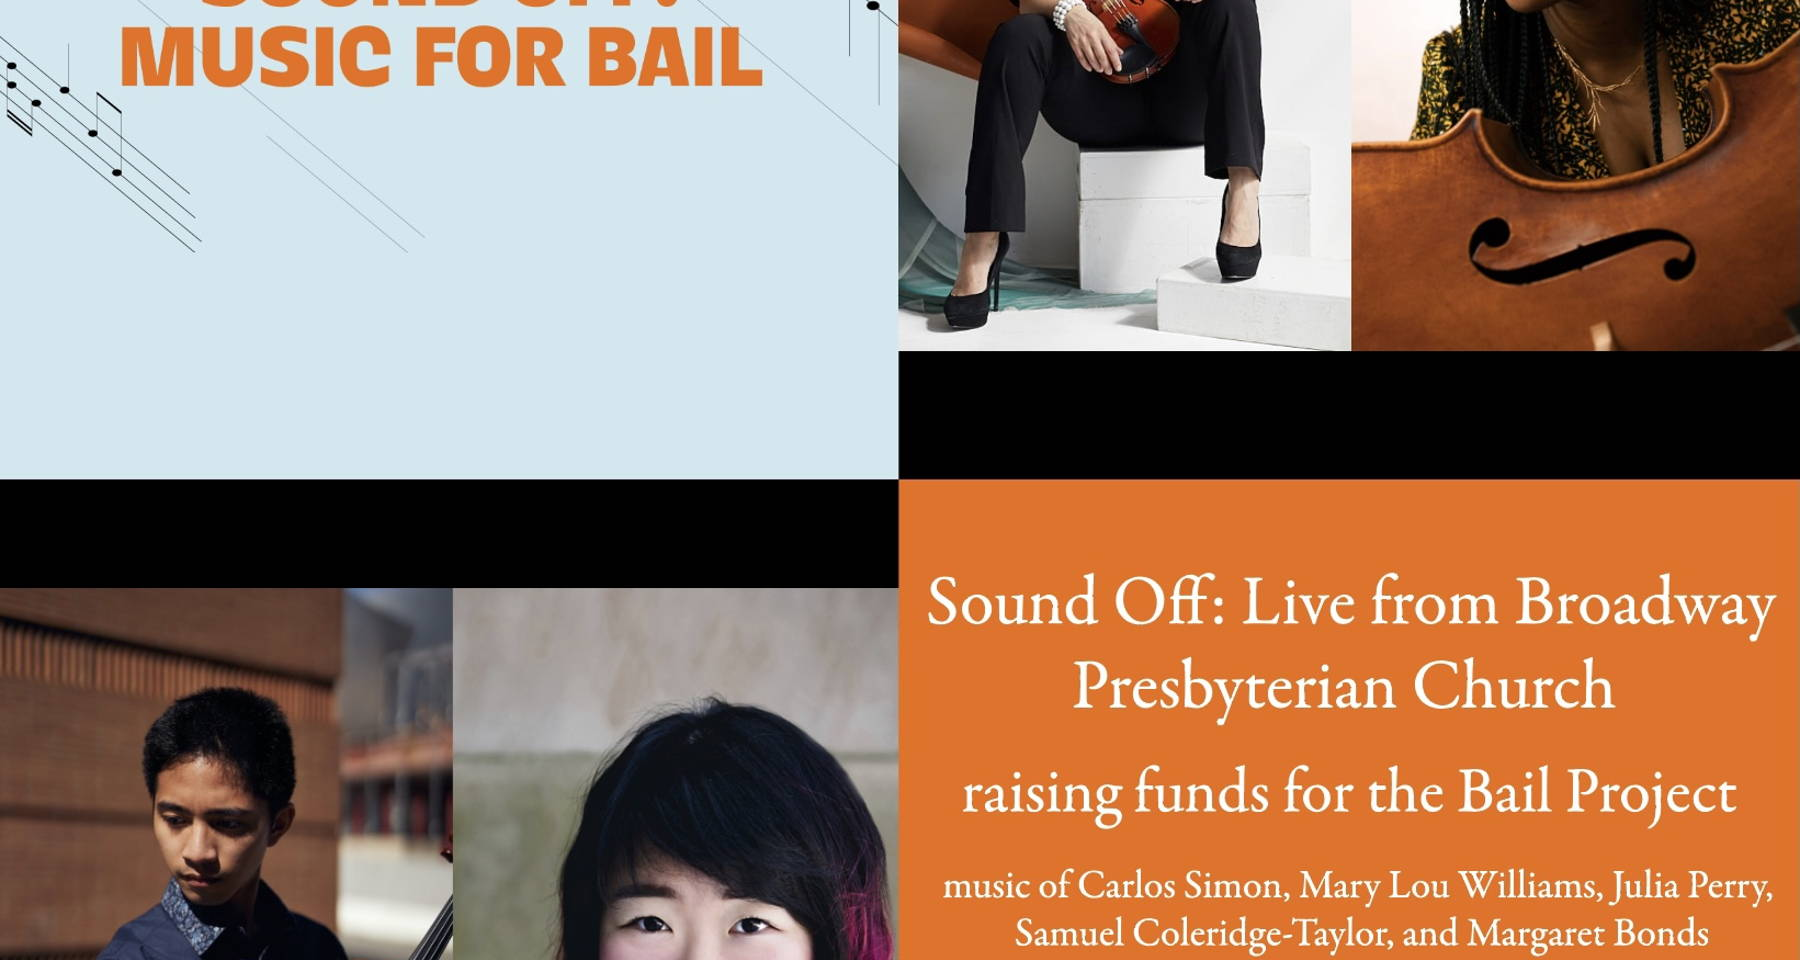 Sound Off: Live from Broadway Presbyterian Church